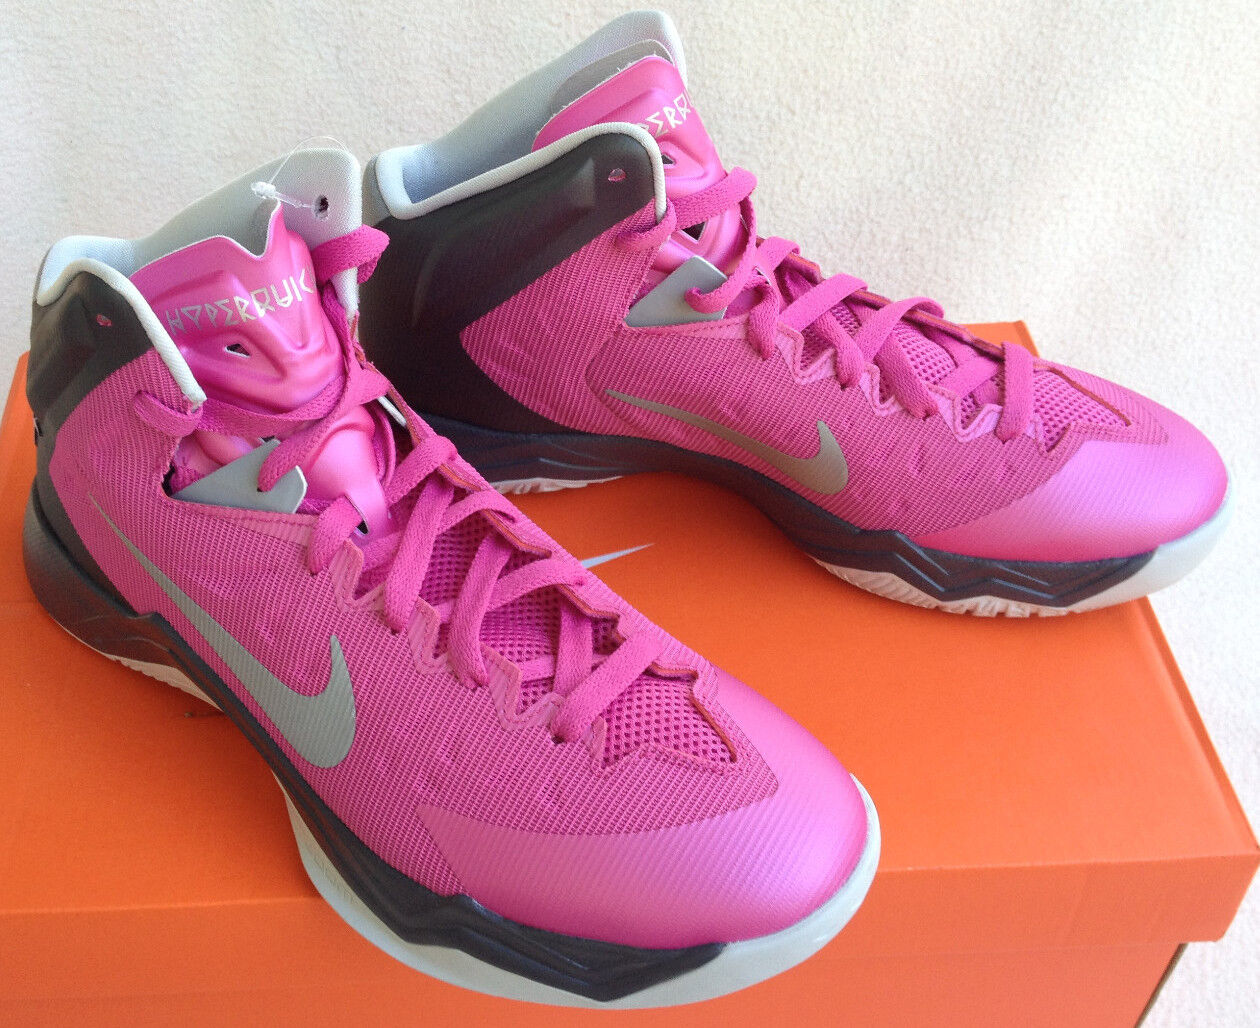 Nike Basketball Zoom Hyperquickness TB 603514-600 Basketball Nike Shoes Pink Women's 10.5 new 619137